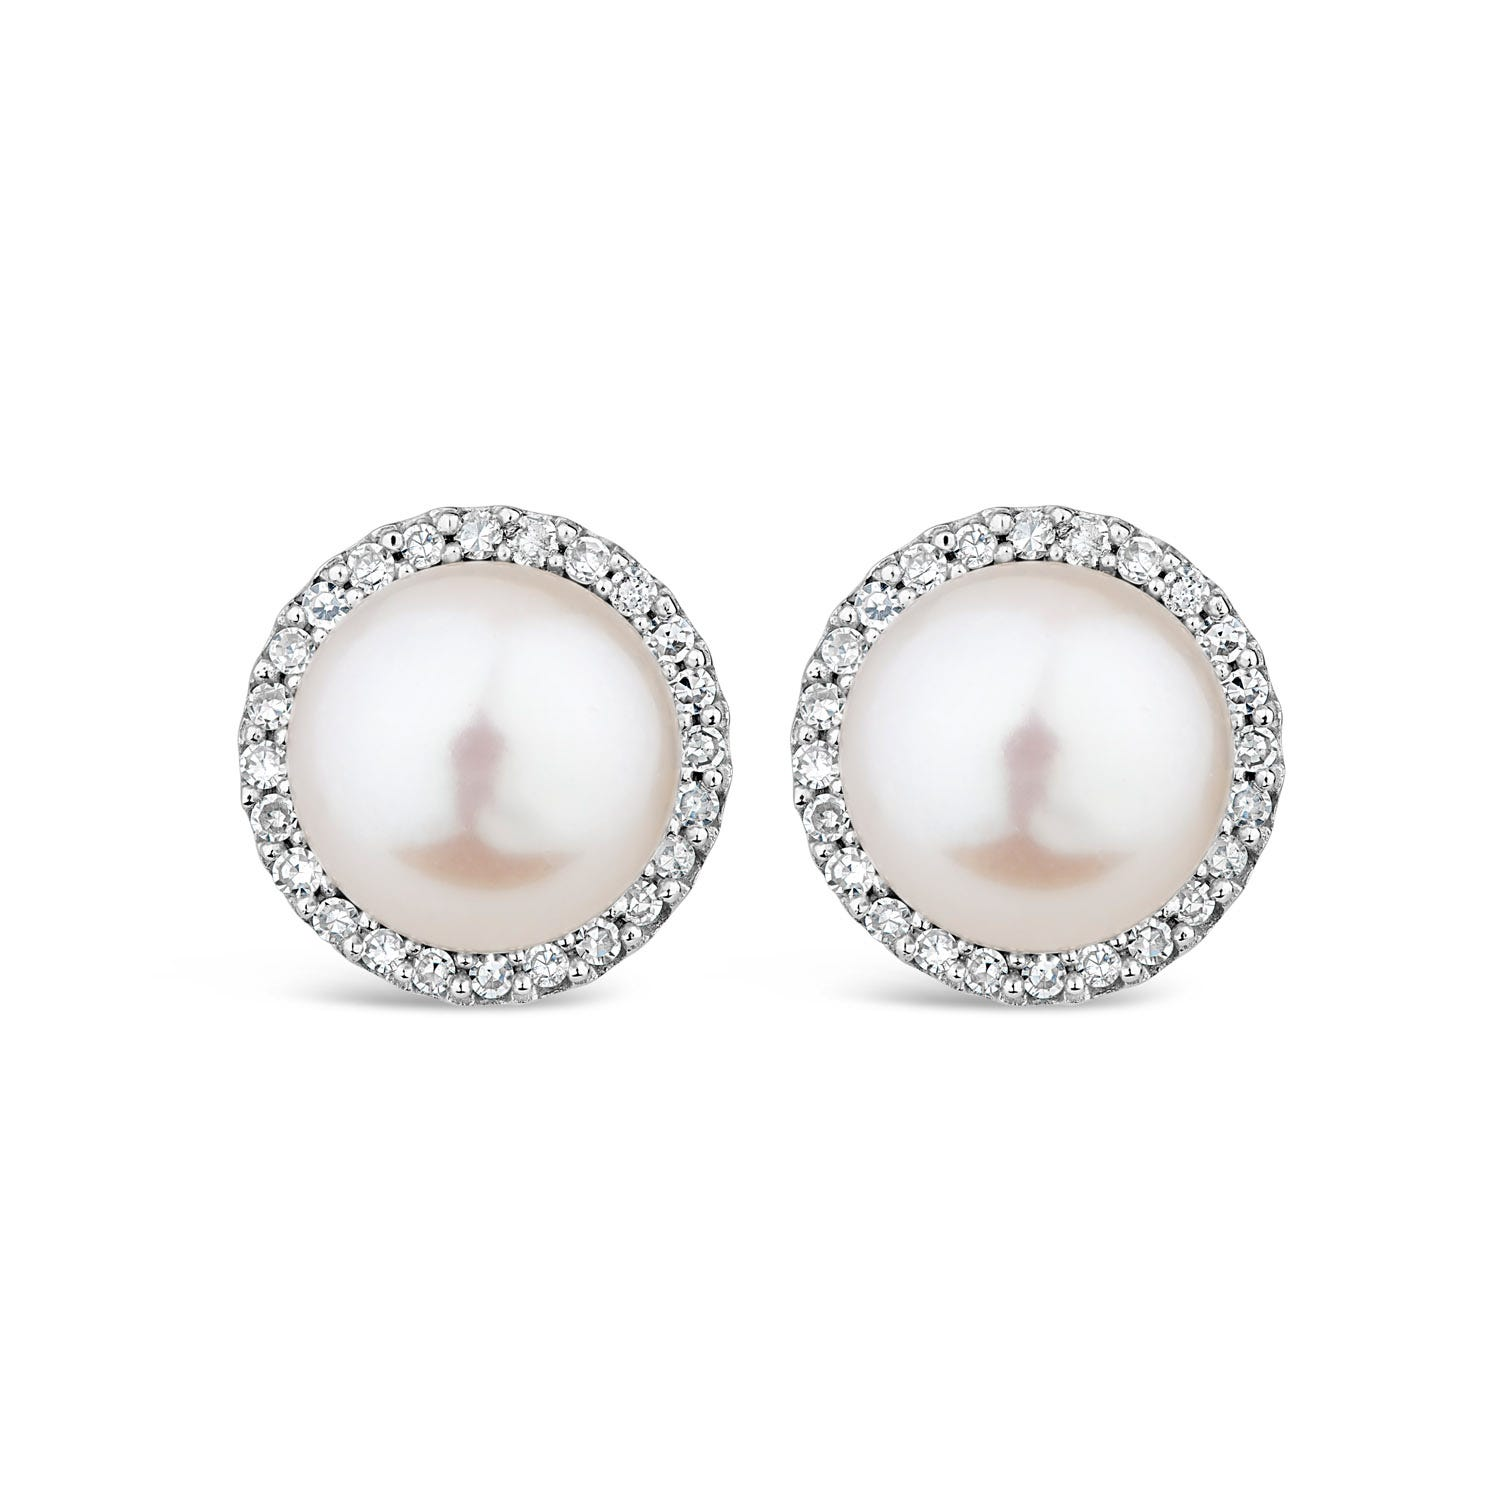 9ct White Gold Diamond & Pearl Halo Stud Earrings